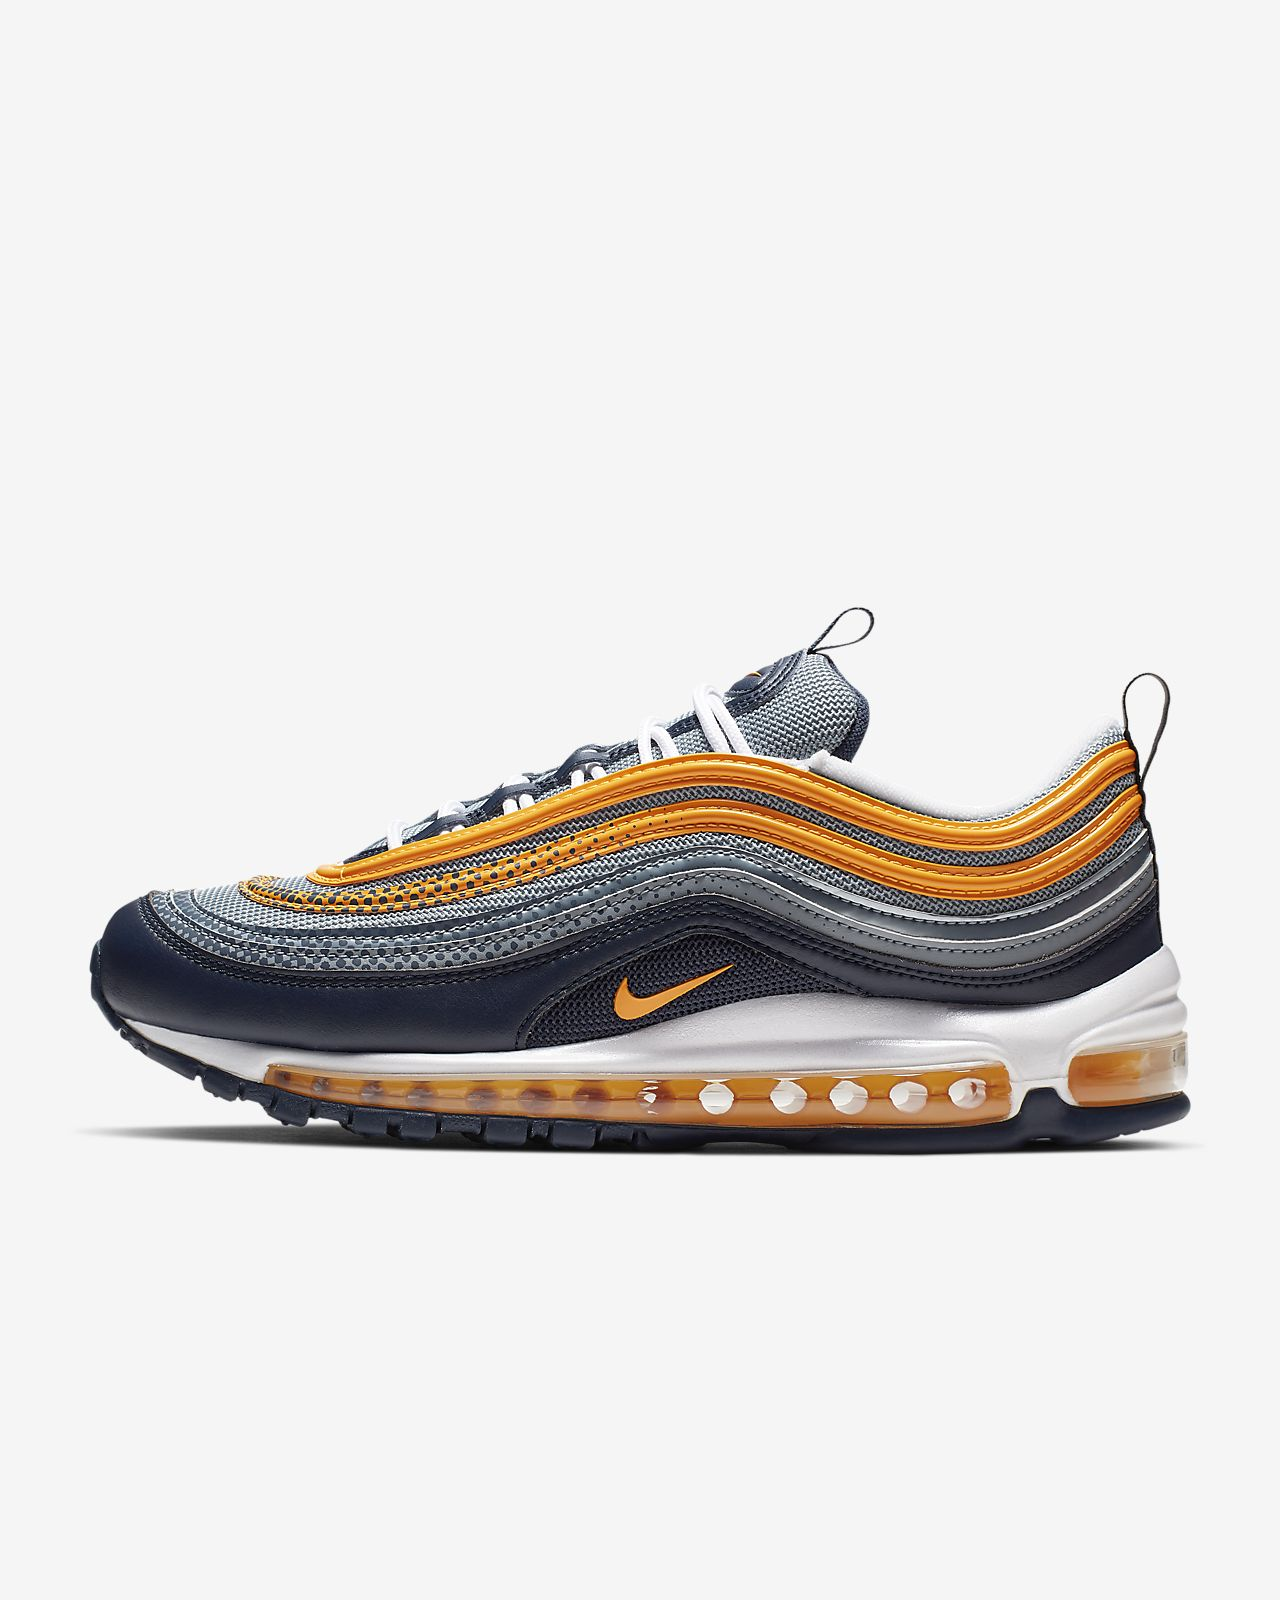 17c70b0184 Nike Air Max 97 SE Men's Shoe. Nike.com